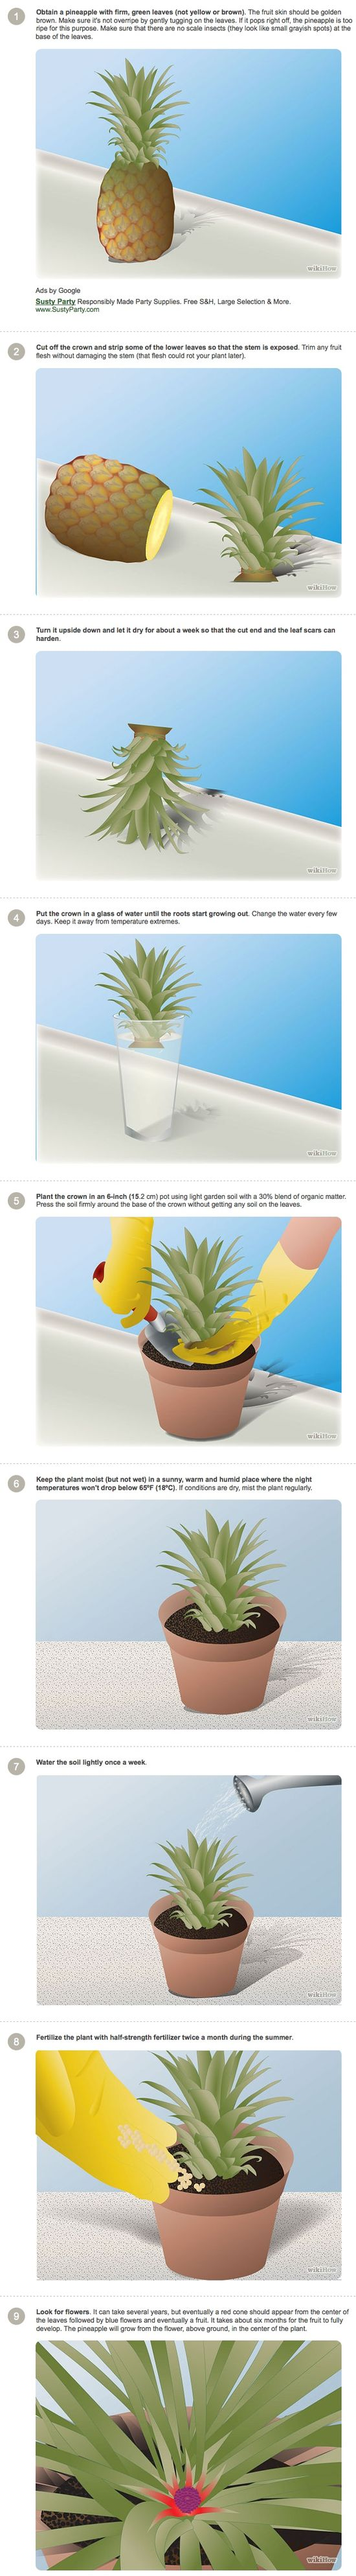 How to grow a pineapple tree! Looks like a great plant!